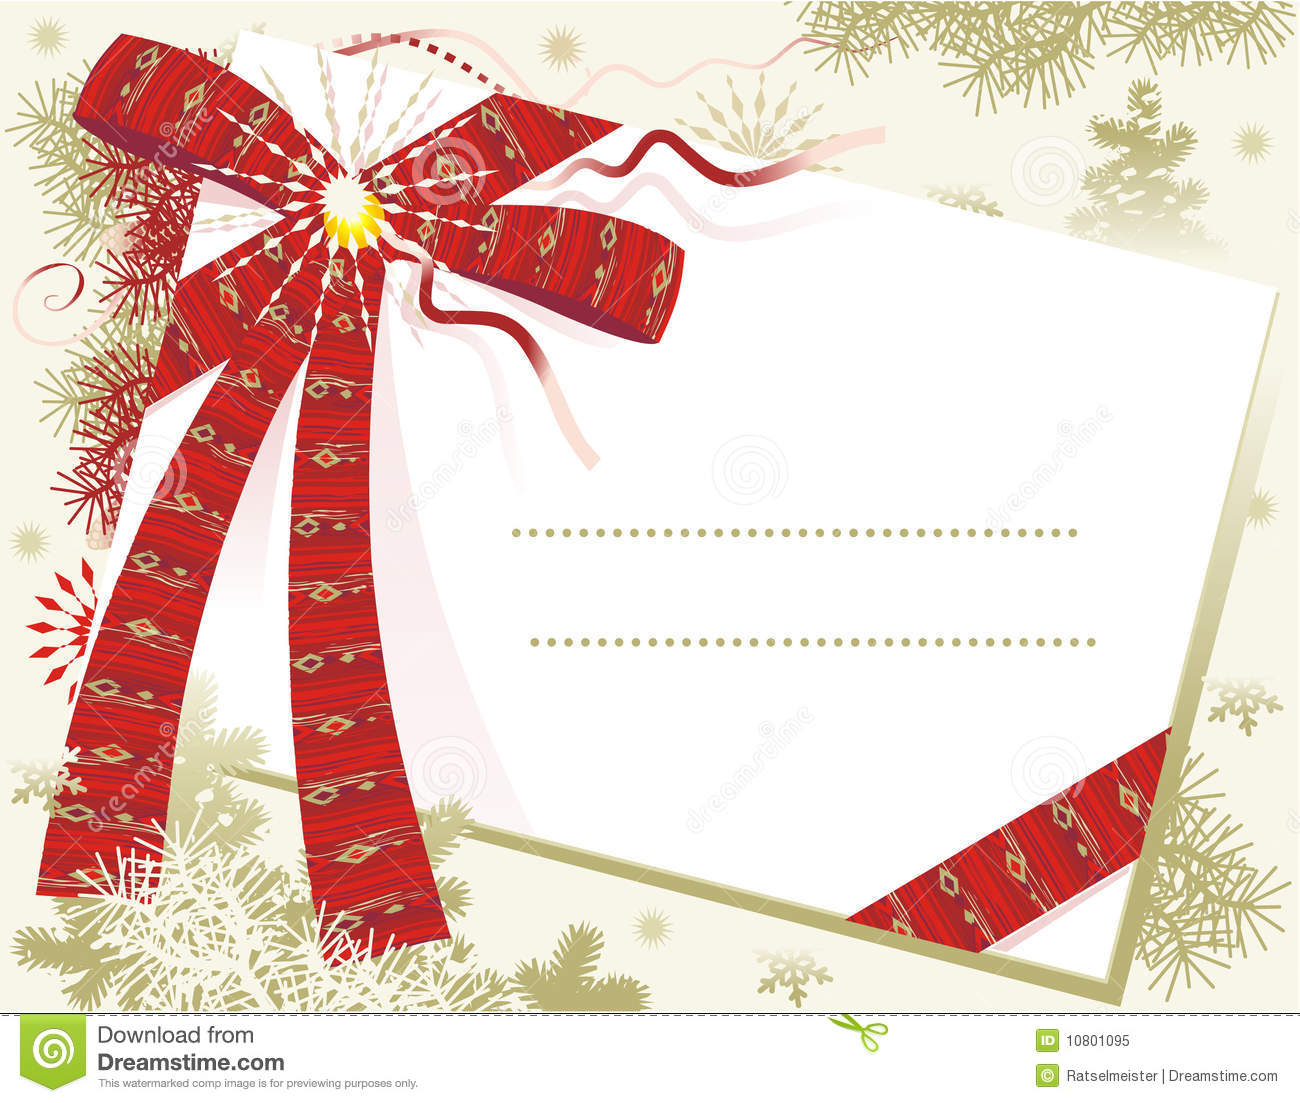 Download Christmas Card With Red Bow Stock Vector - Illustration of postcards, stationery: 10801095